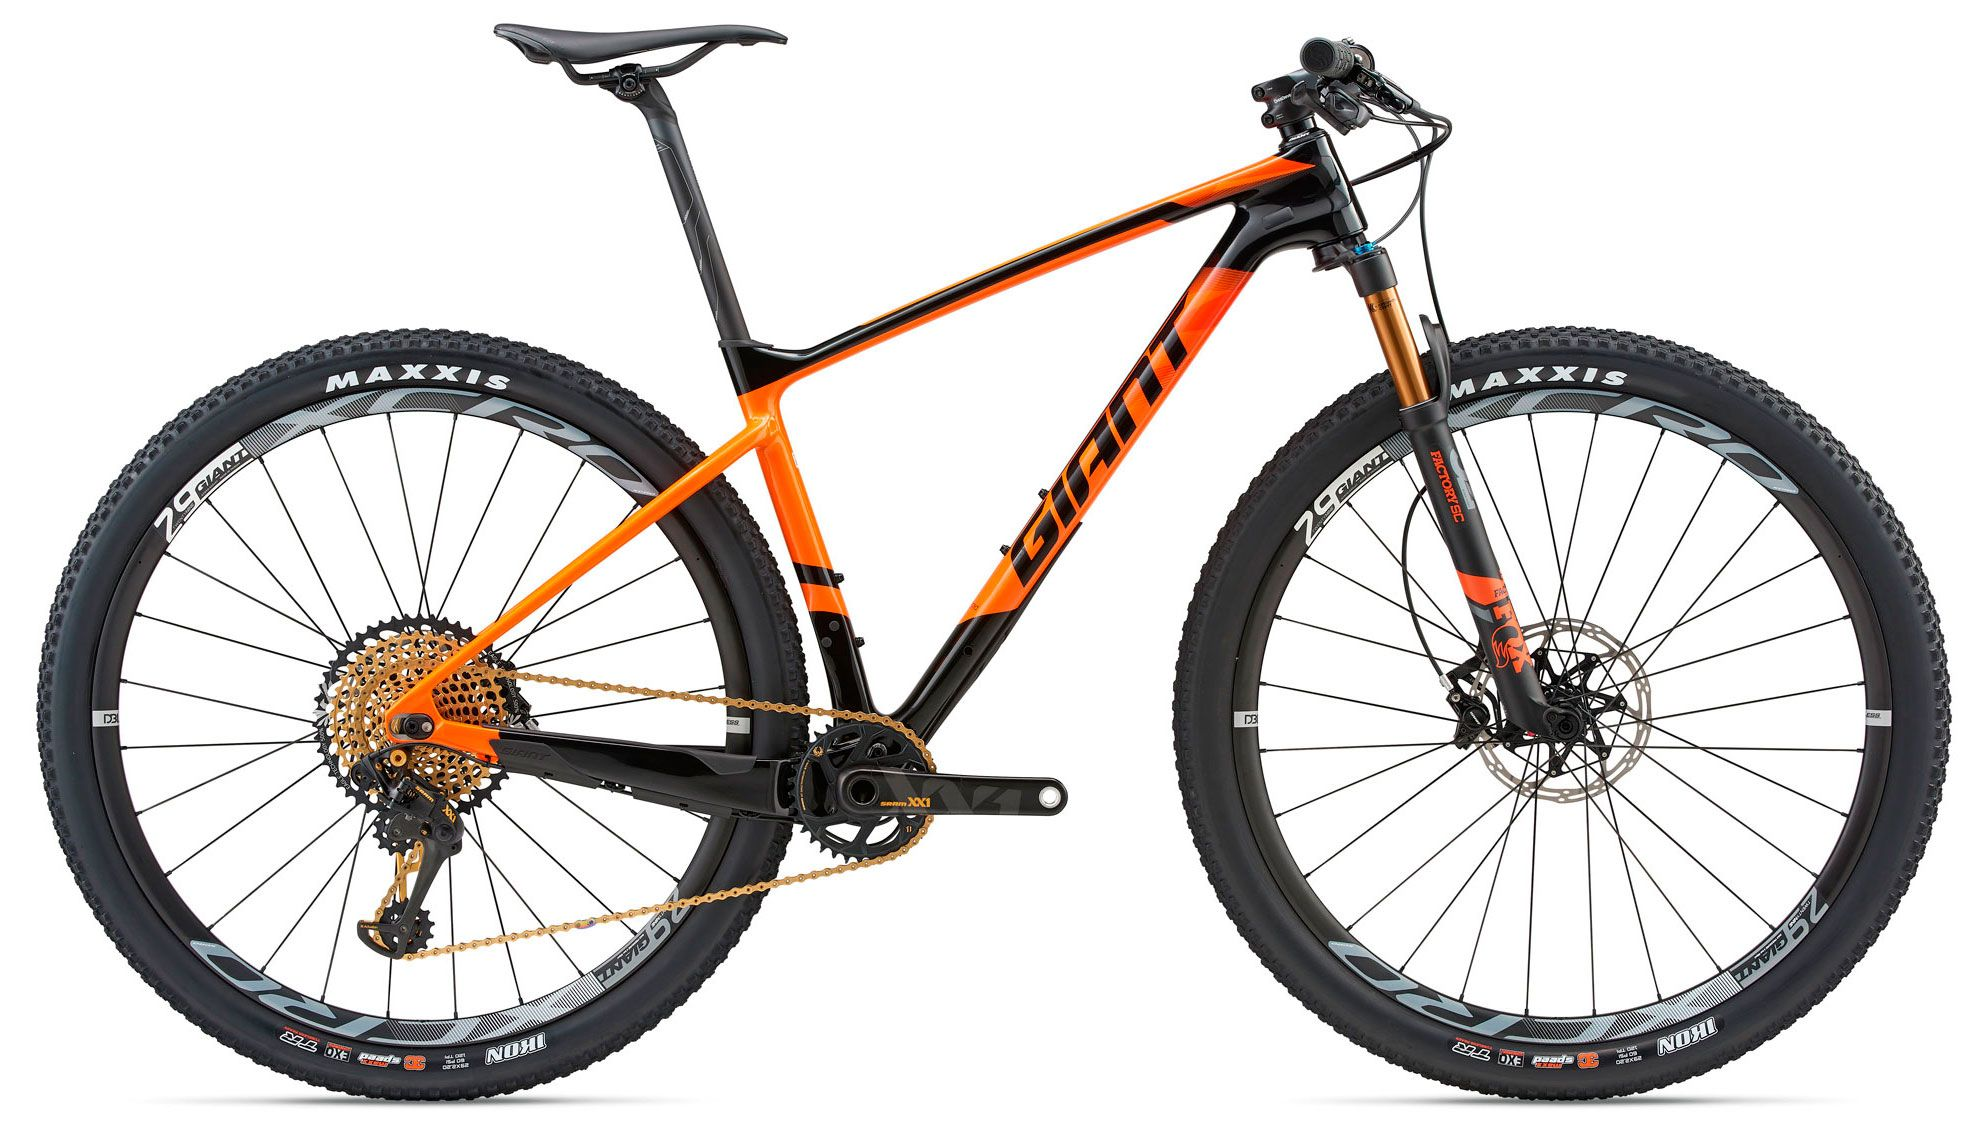 Велосипед Giant XTC Advanced 29er 0 2018 велосипед giant xtc composite 1 2013